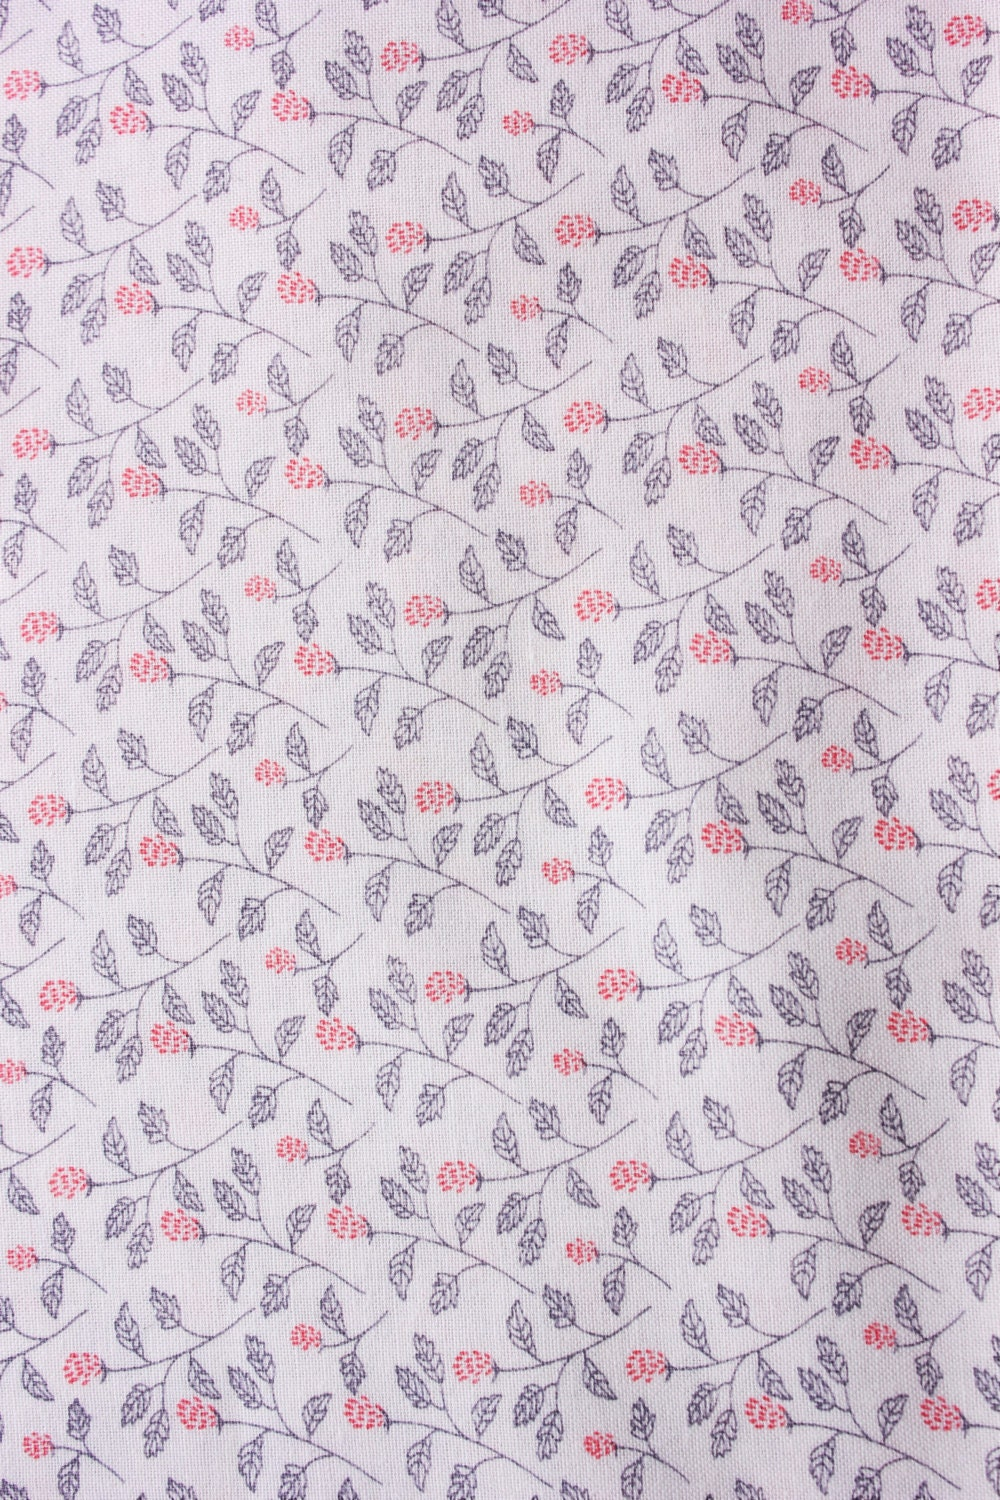 Cotton Fabric / Floral Fabric / Leaves Fabric Print / White